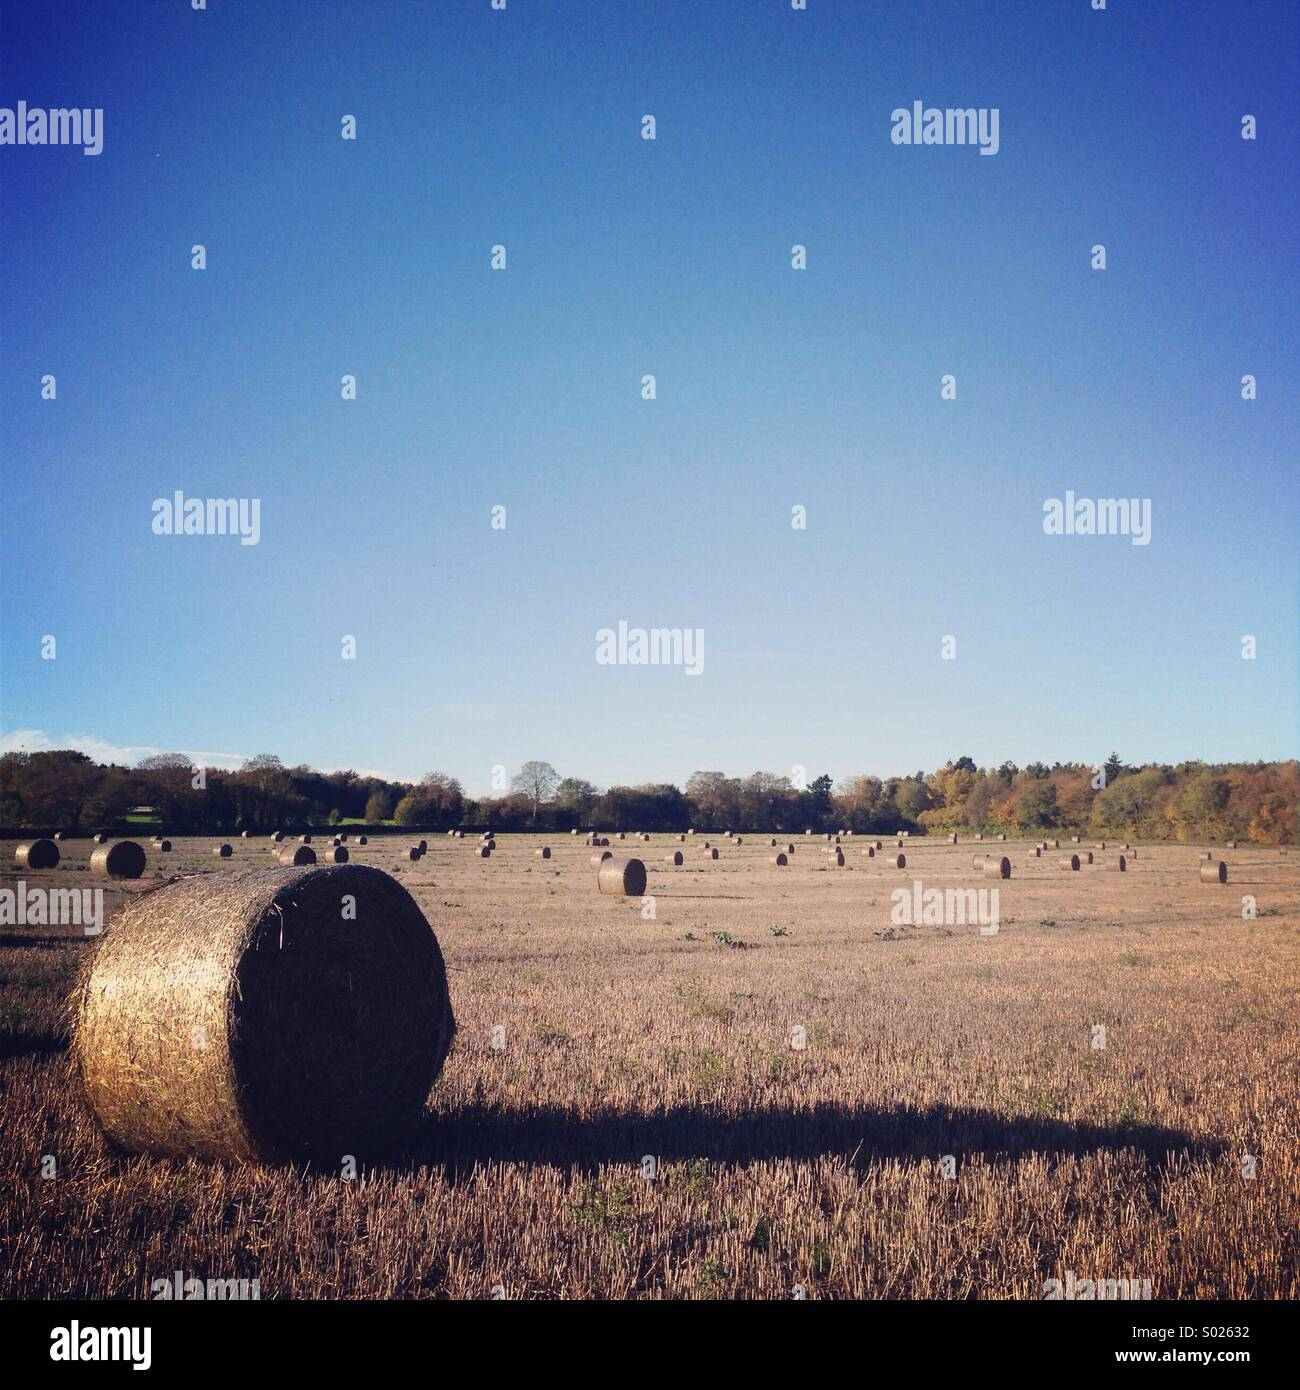 Hay Bails - Stock Image